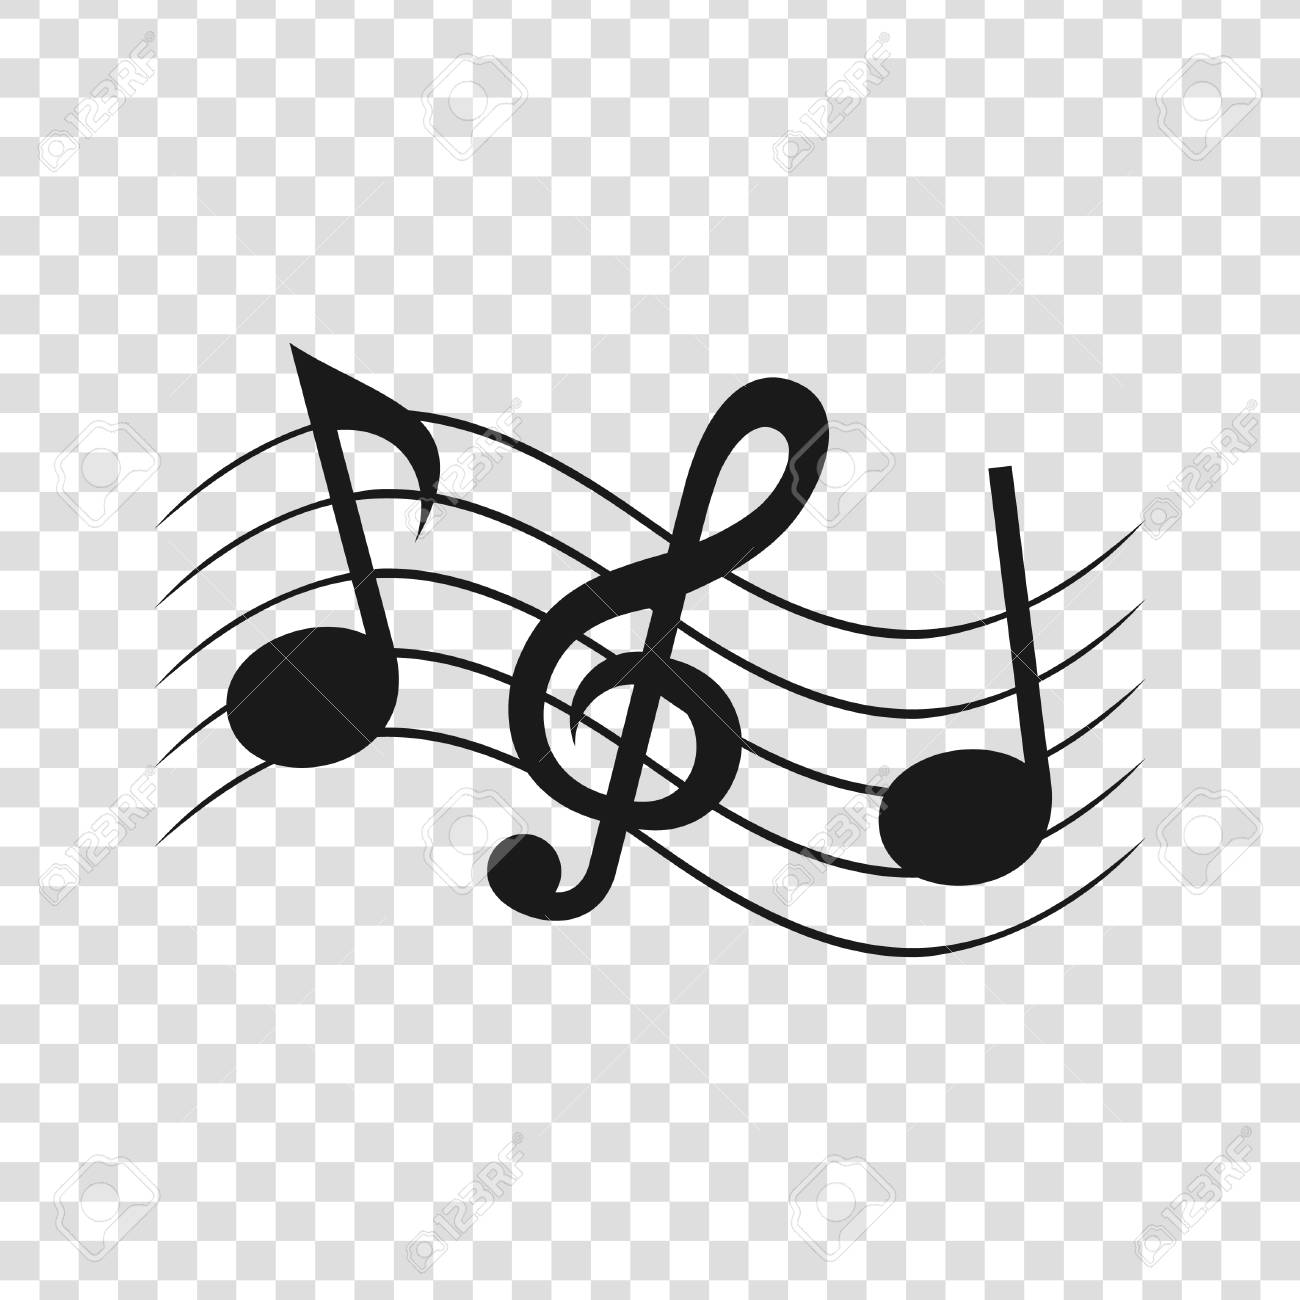 Transparent Music Notes & Free Transparent Music Notes.png.